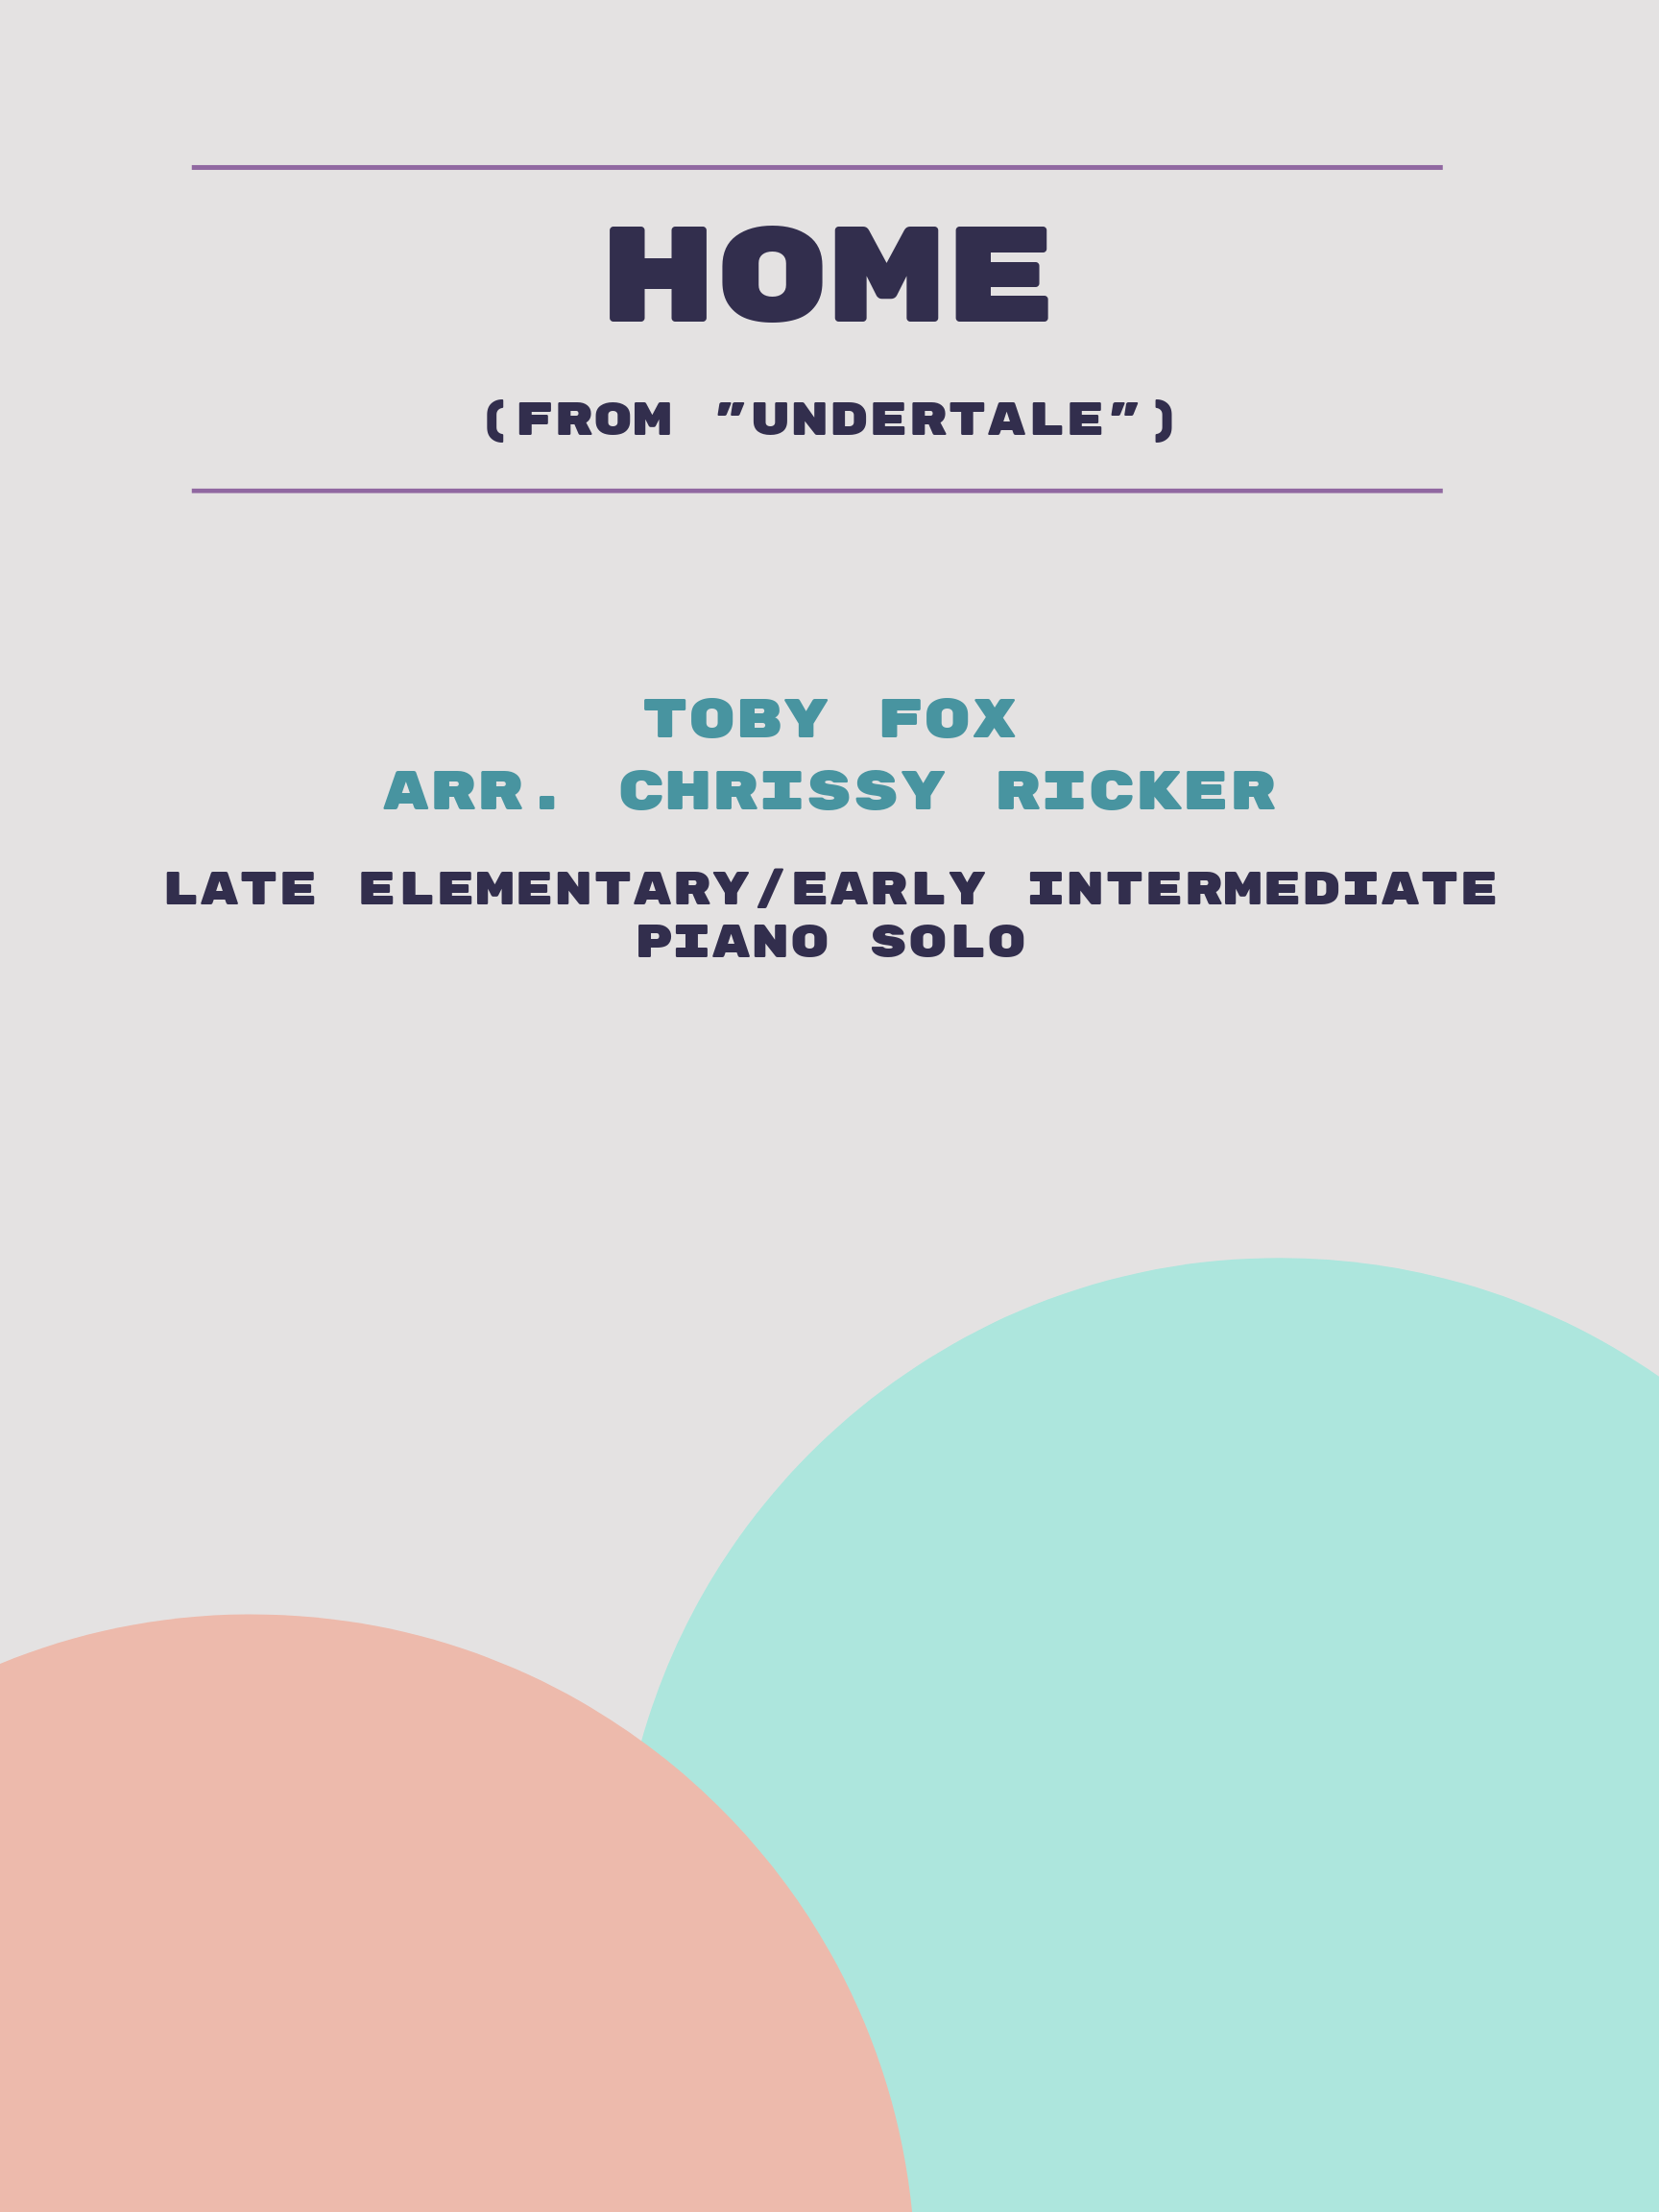 Home by Toby Fox